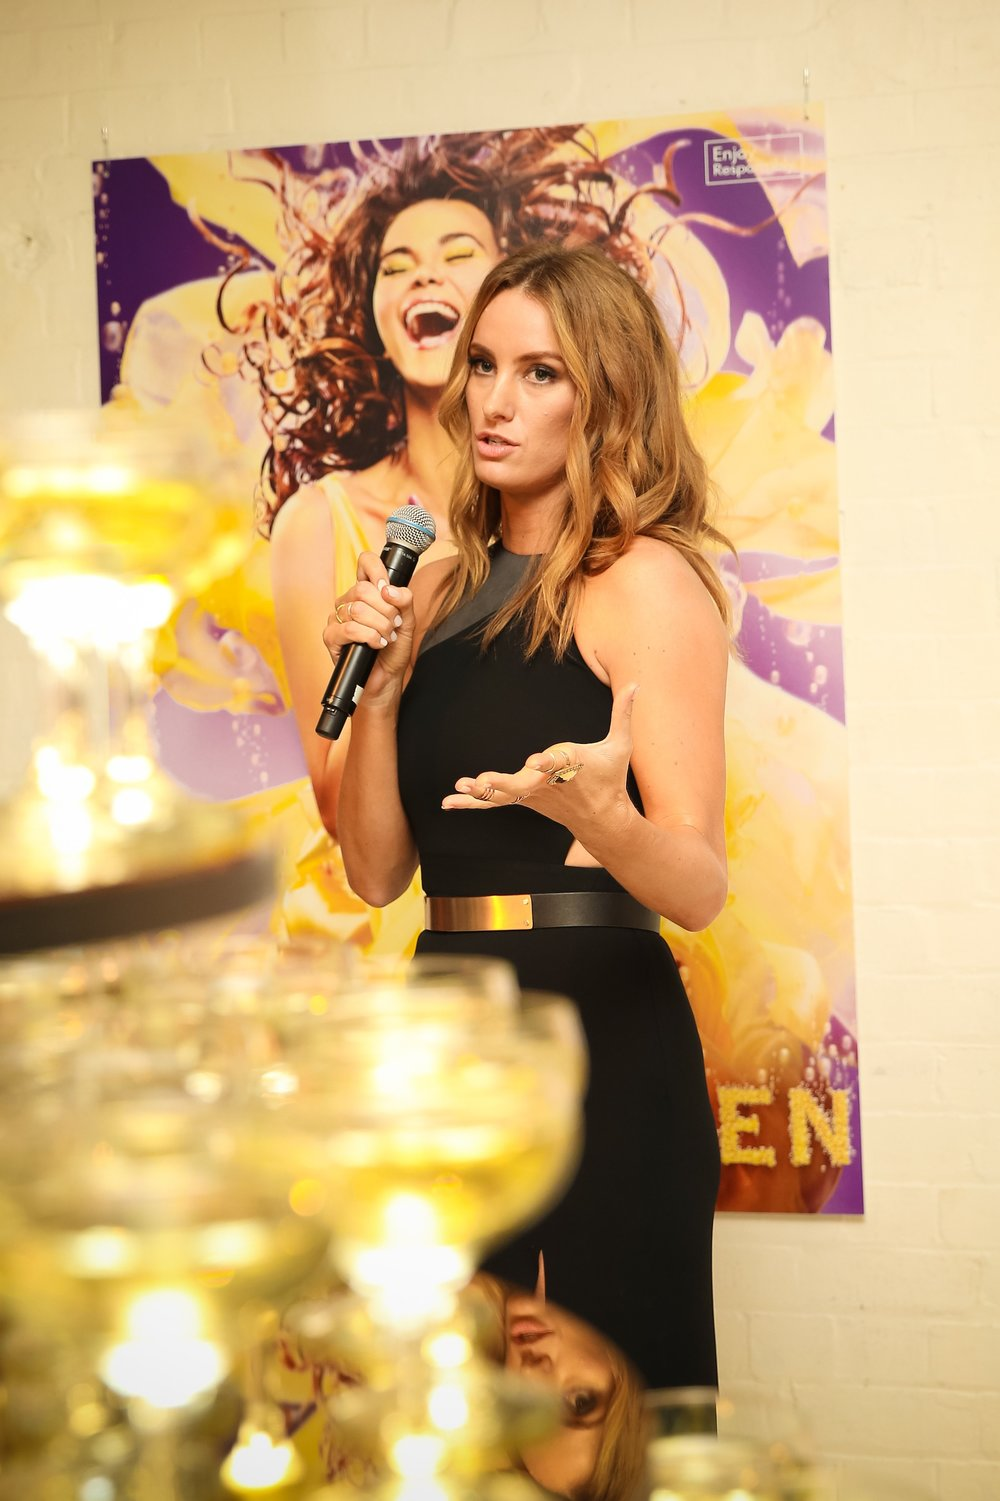 yellowglen-sparkle-launch-samantha-wils.jpg